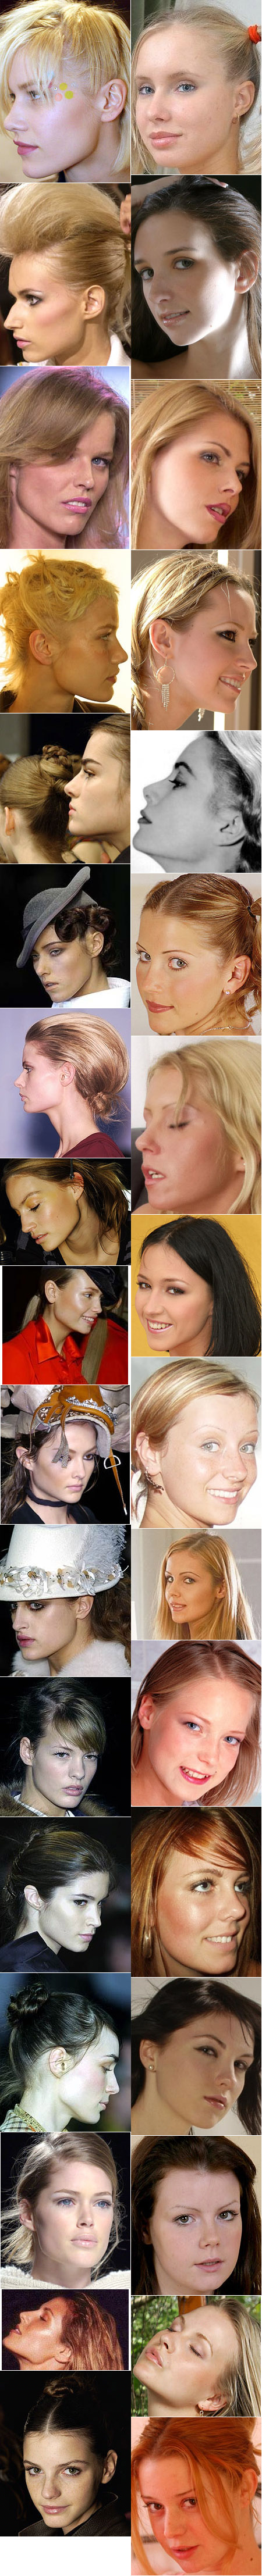 The jaw structure of high-fashion models contrasted with that of feminine glamour models.